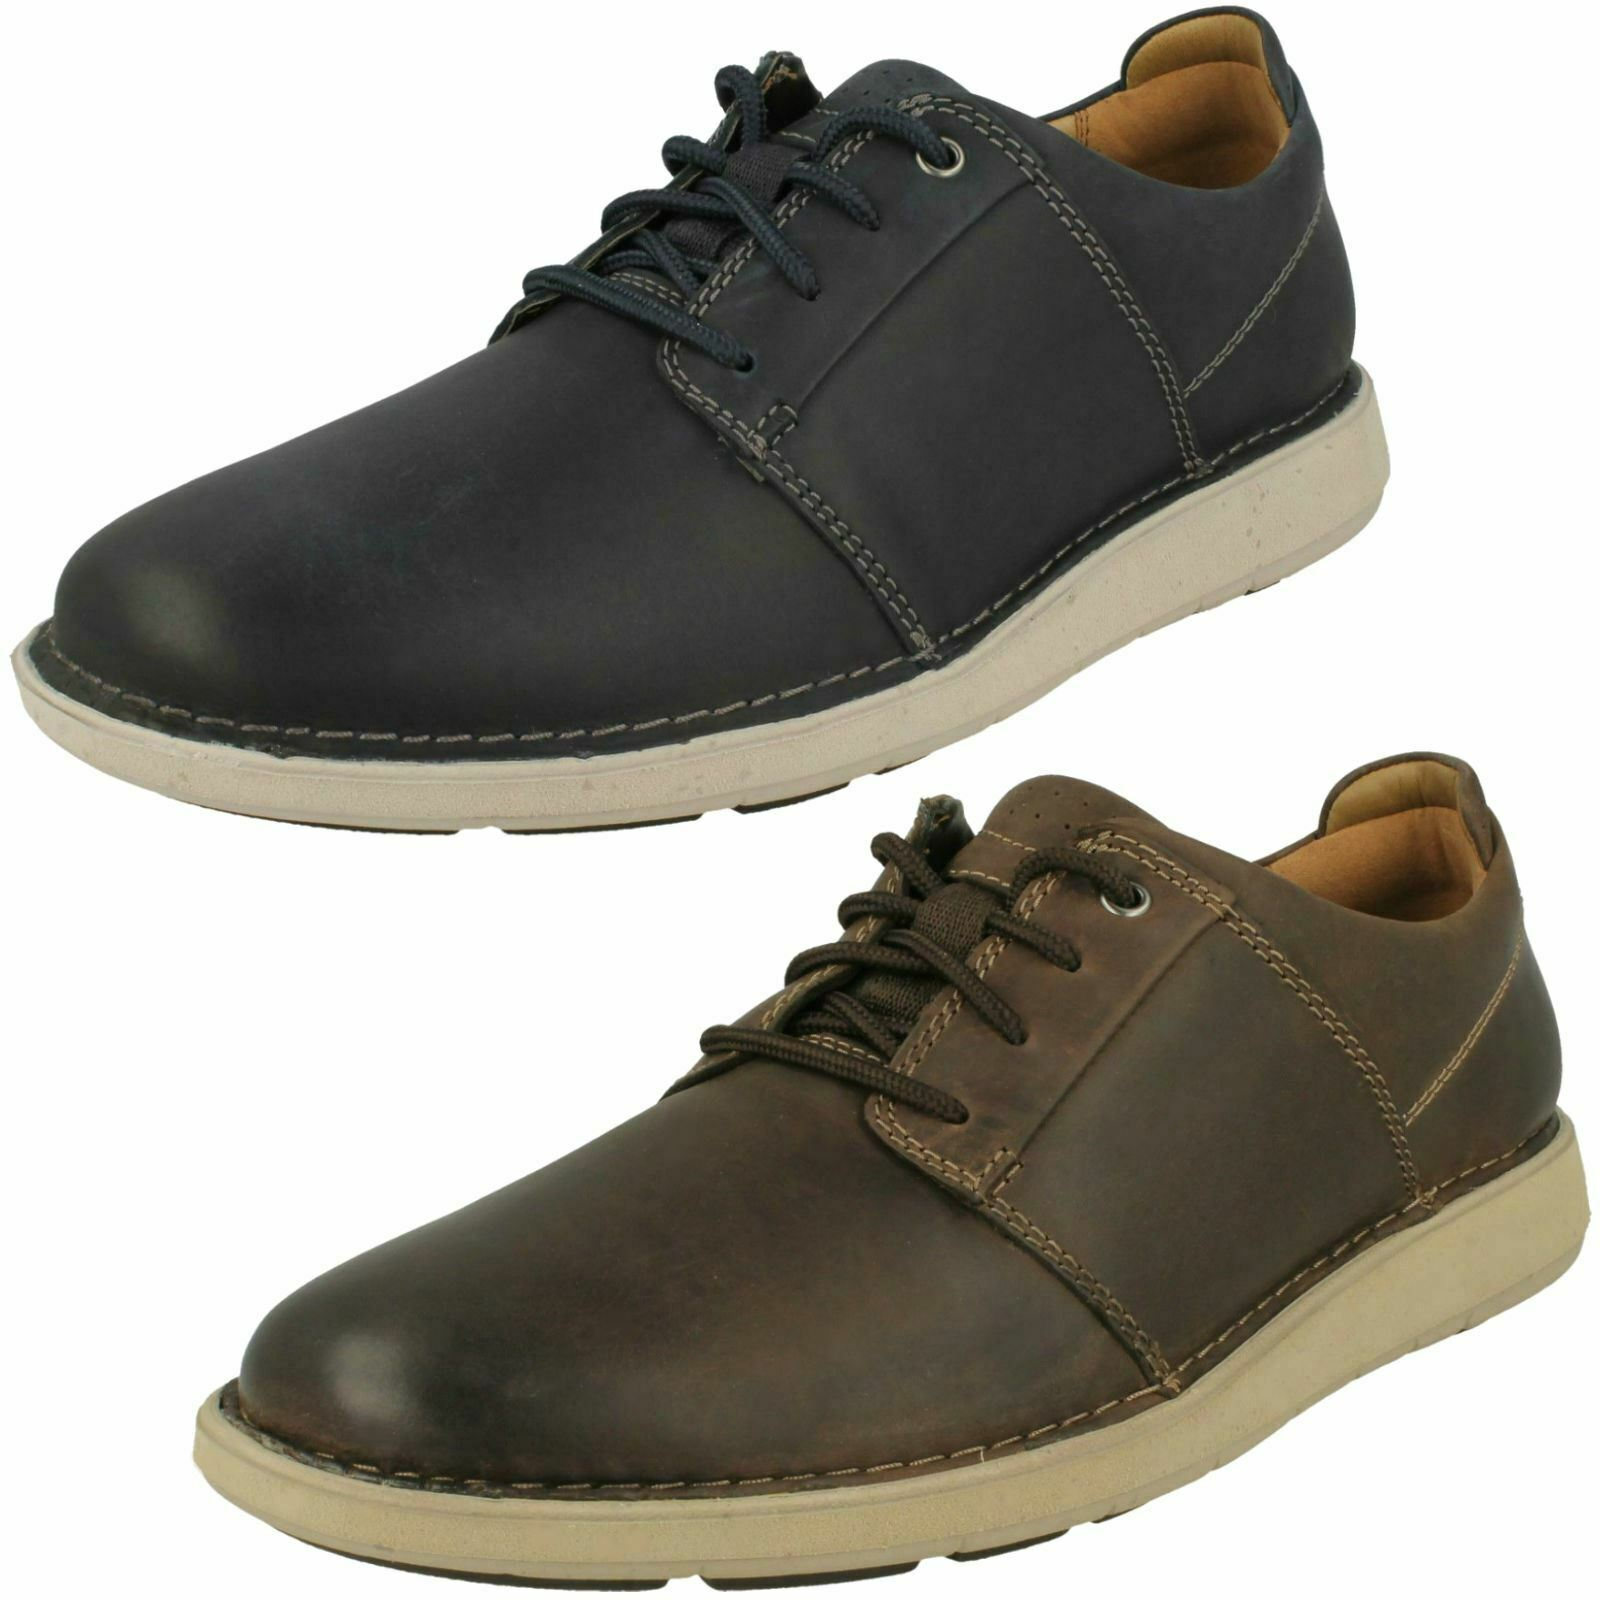 Mens Clarks Lace Up Casual schuhe - Un Larvik Lace